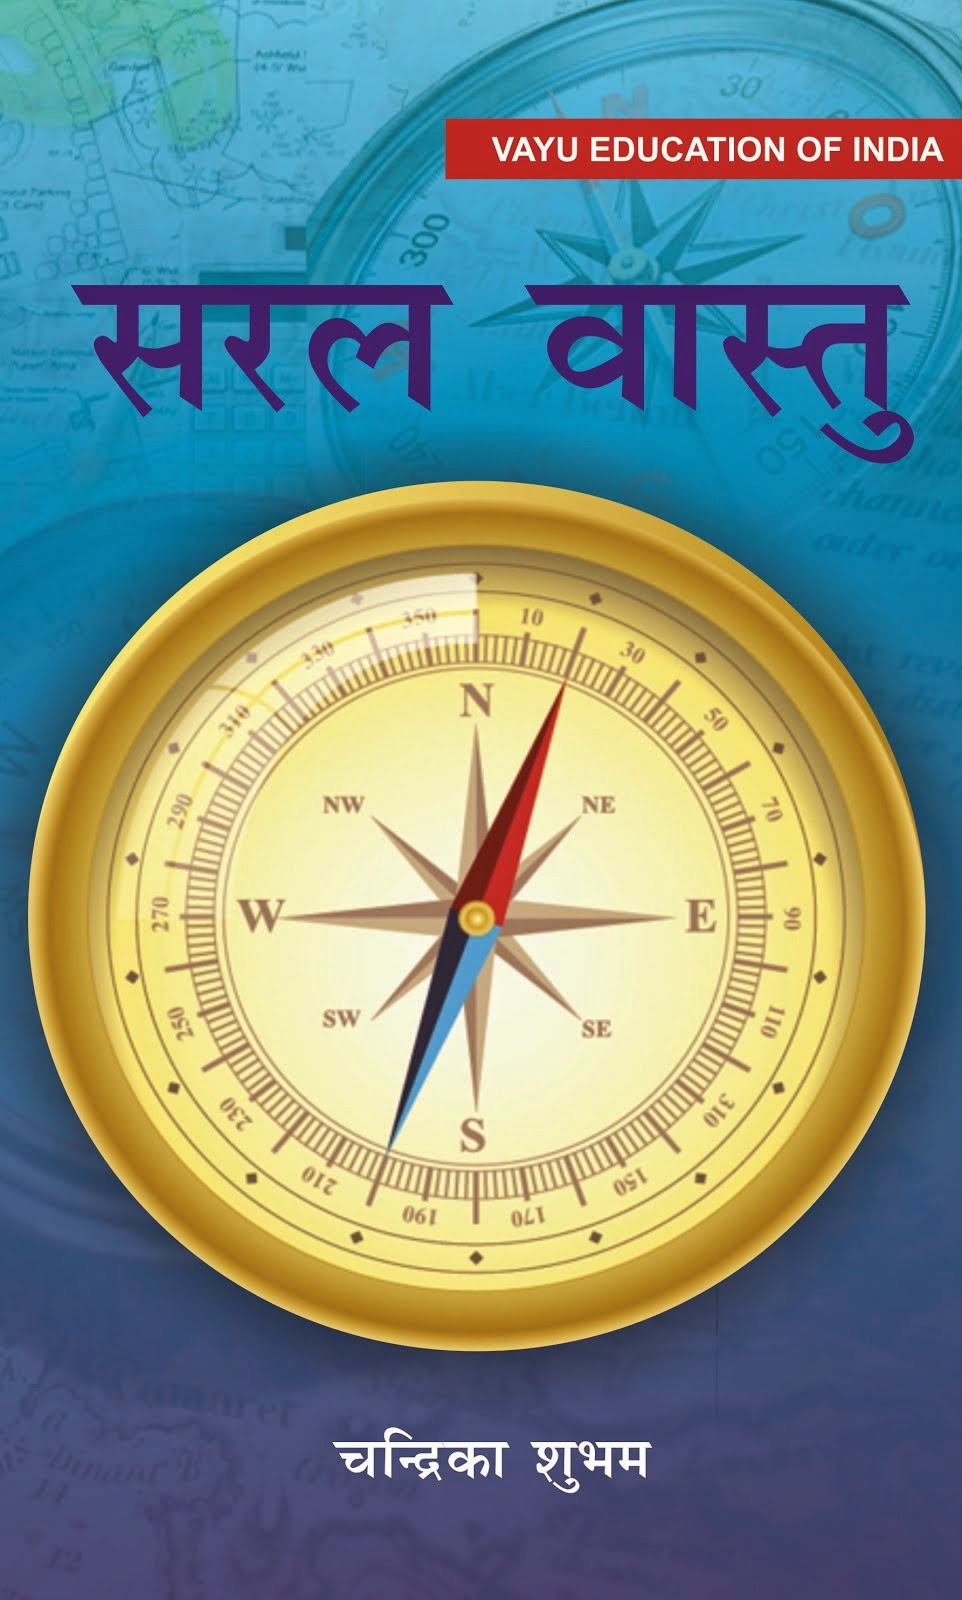 Book authored by me in Hindi!